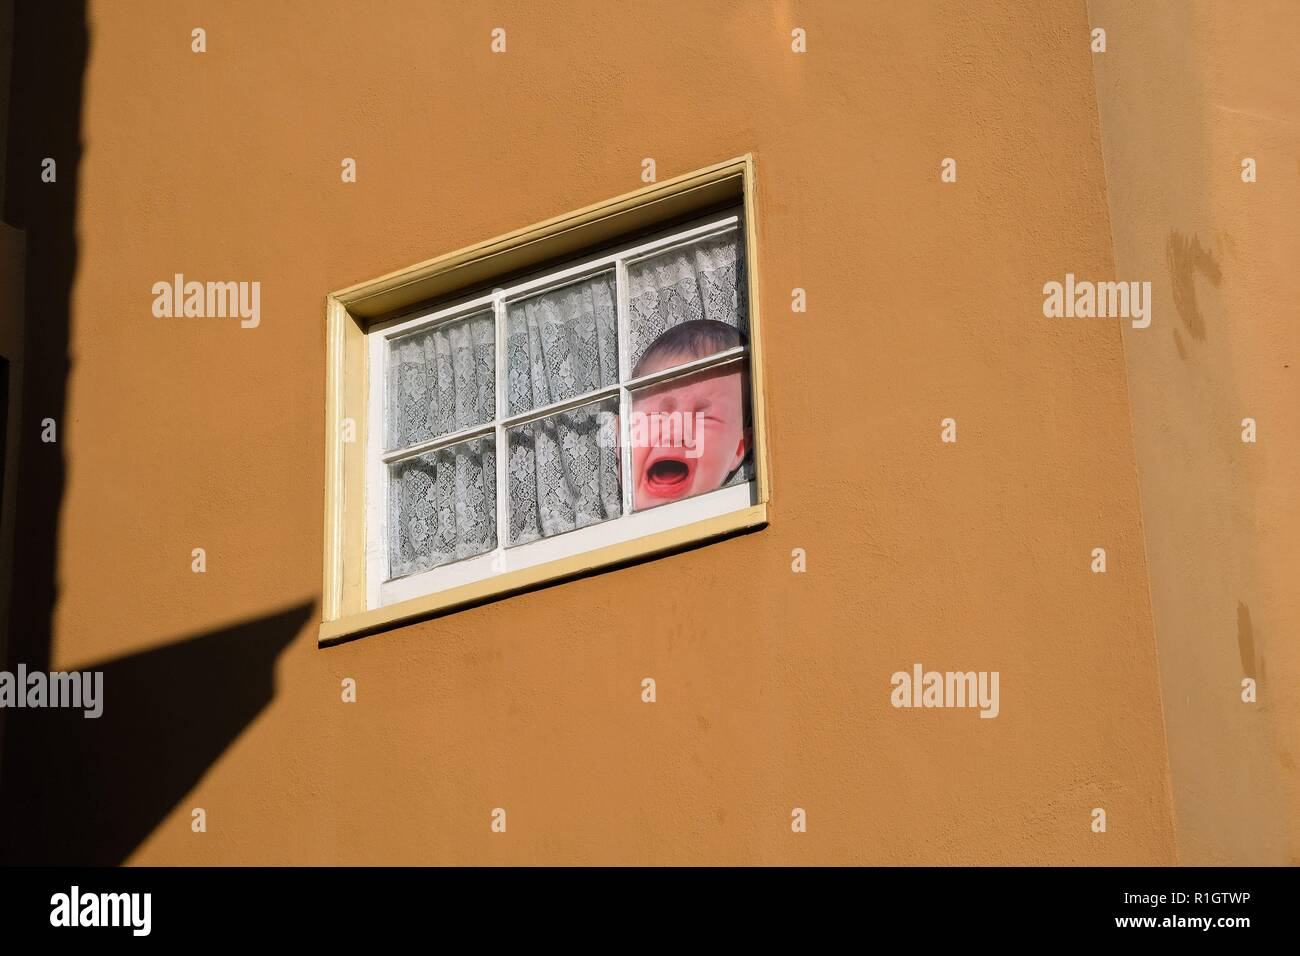 Image of a crying baby on a second story window in San Francisco, California, USA; street view, exterior. - Stock Image